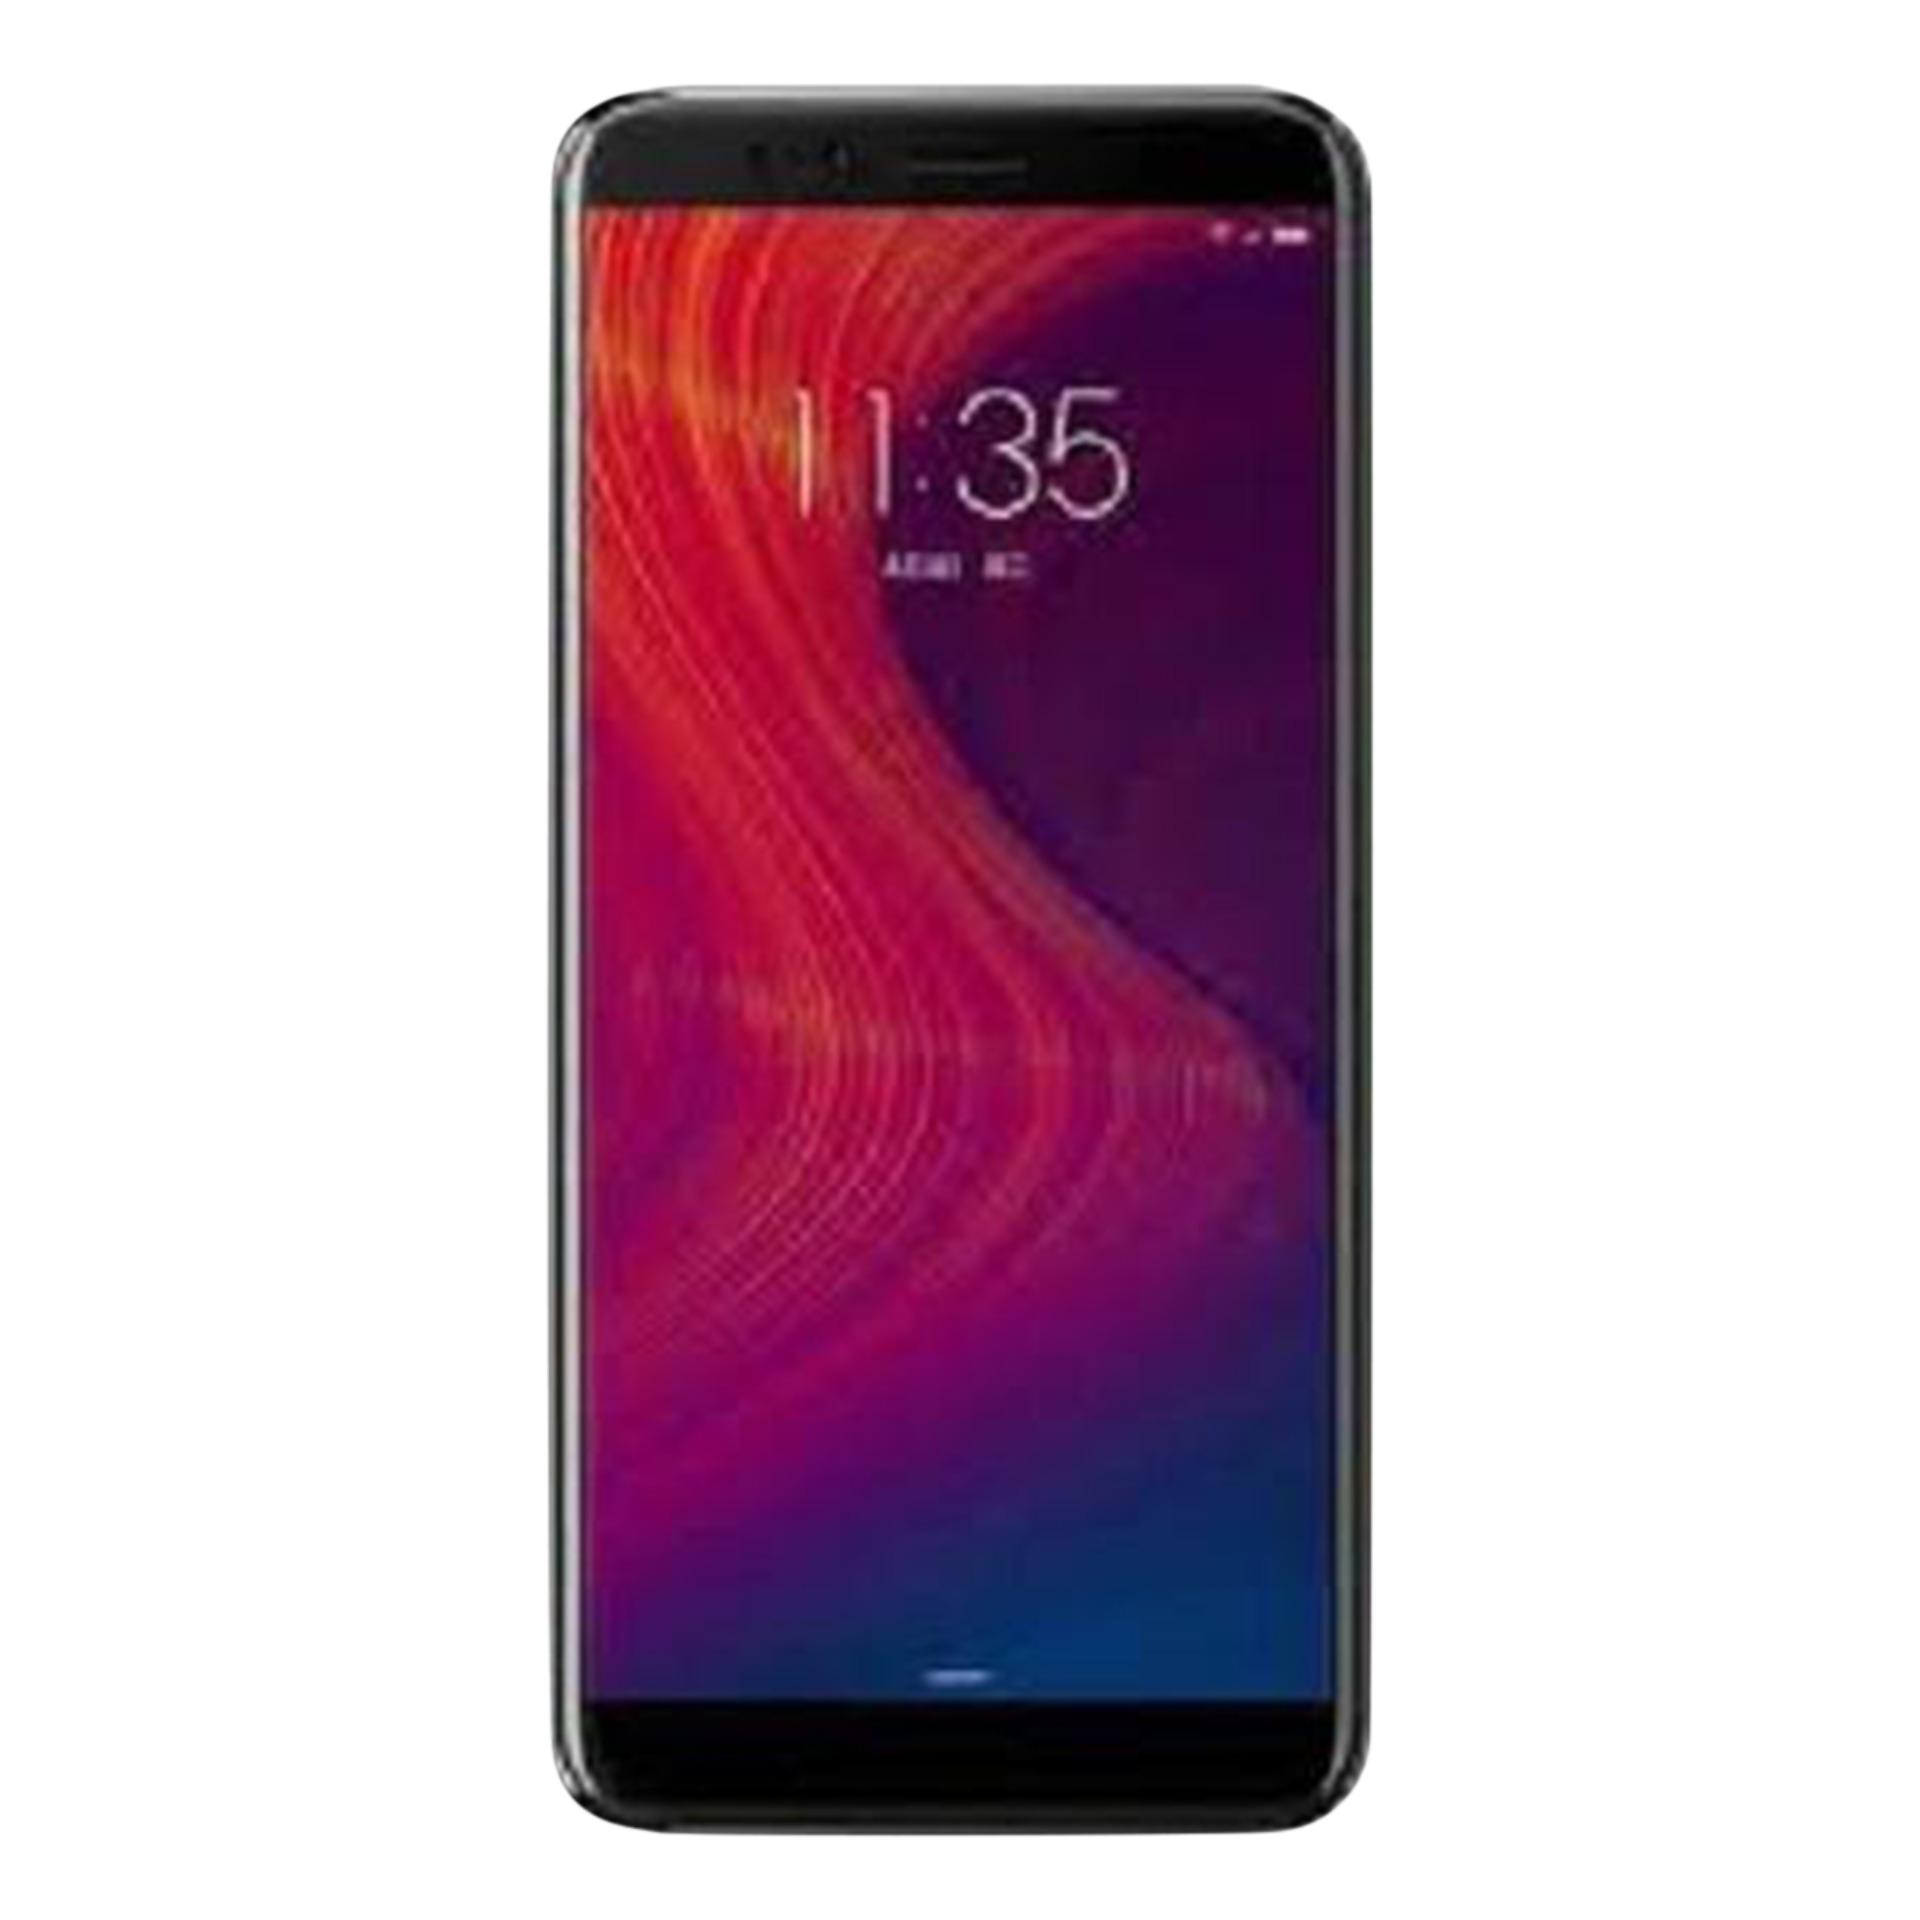 lenovo z5 price in bangladesh